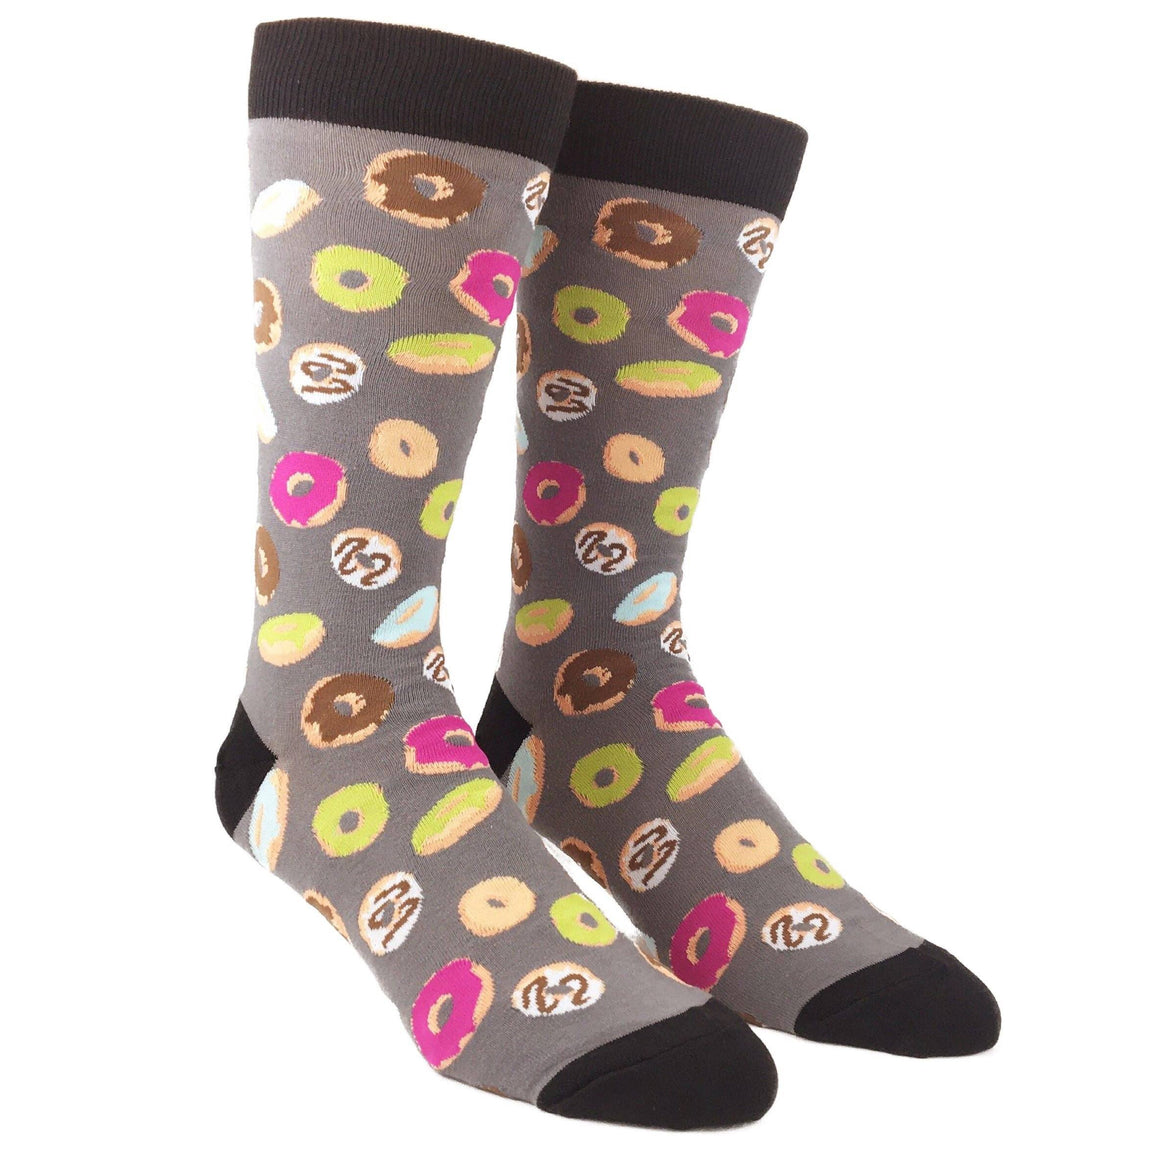 All the Donuts Food Socks by K.Bell - The Sock Spot